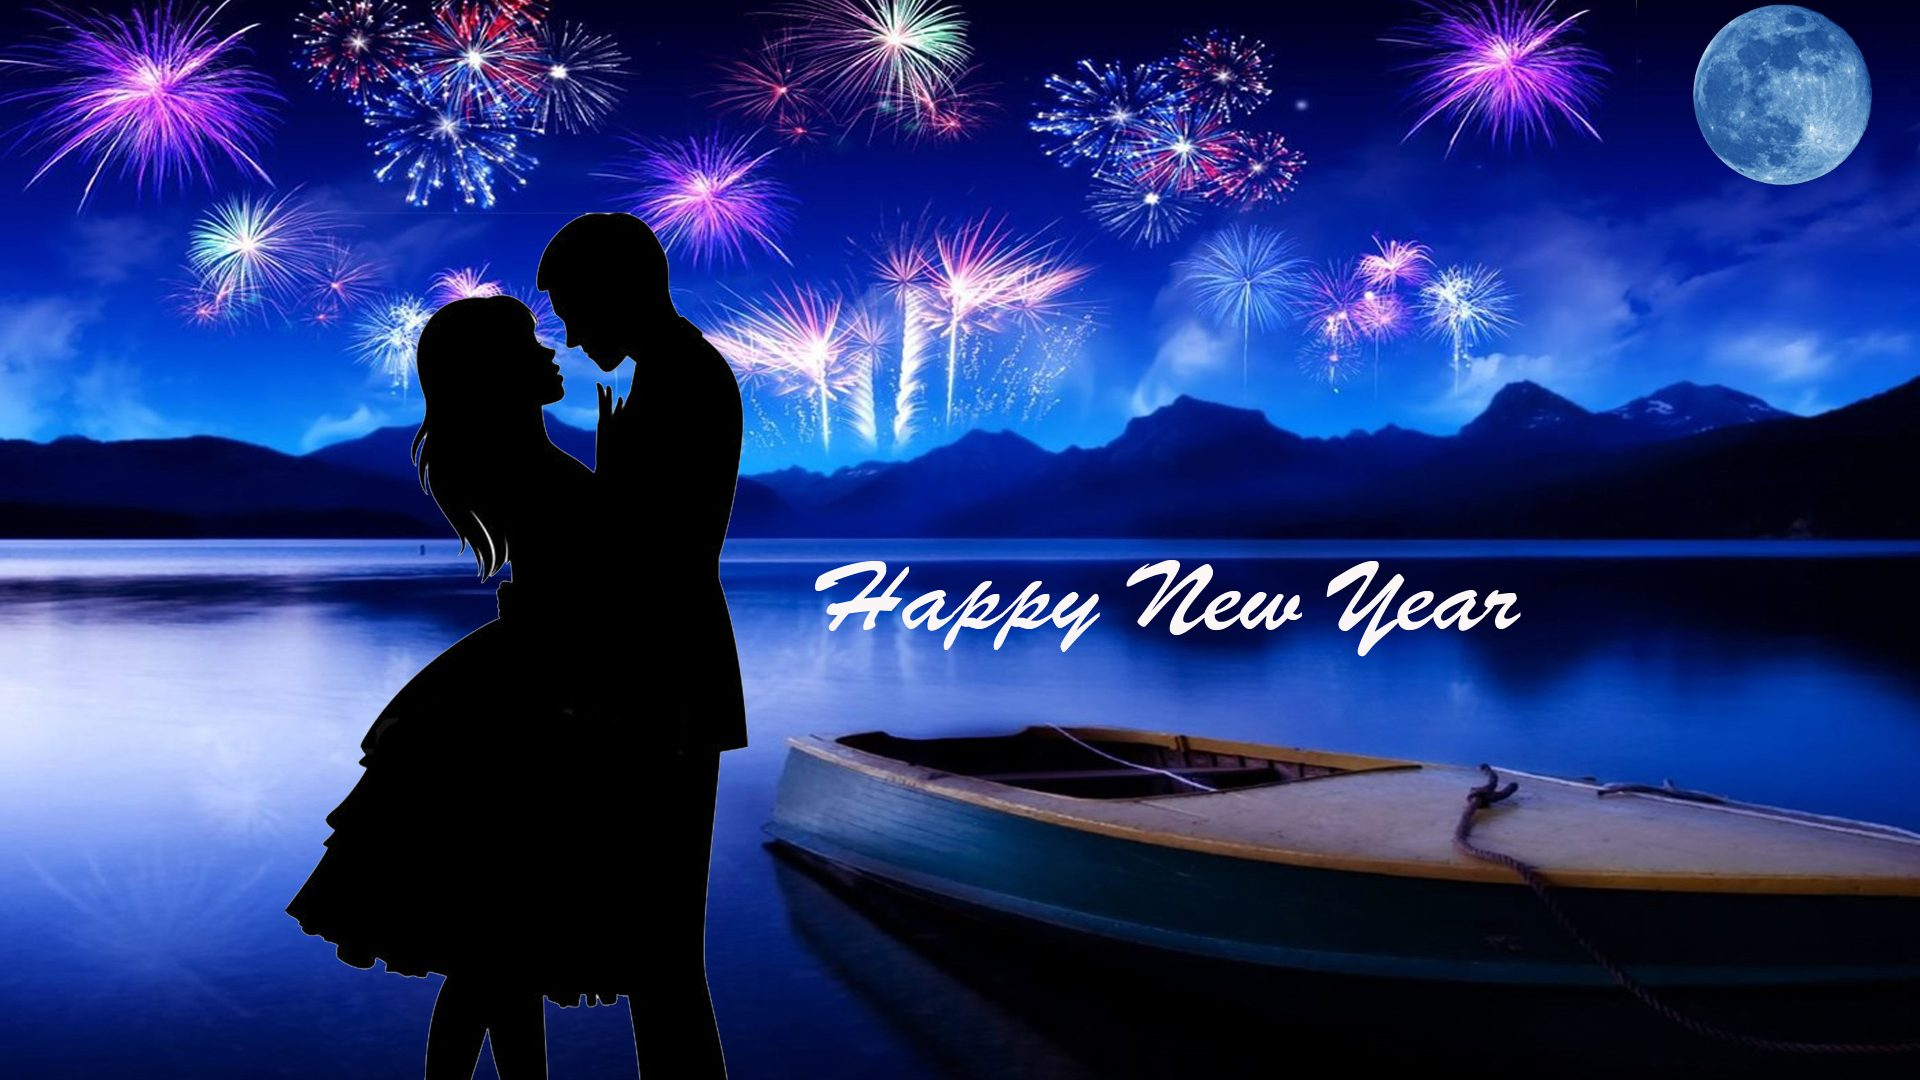 Animated New Years Pictures With Music For Love